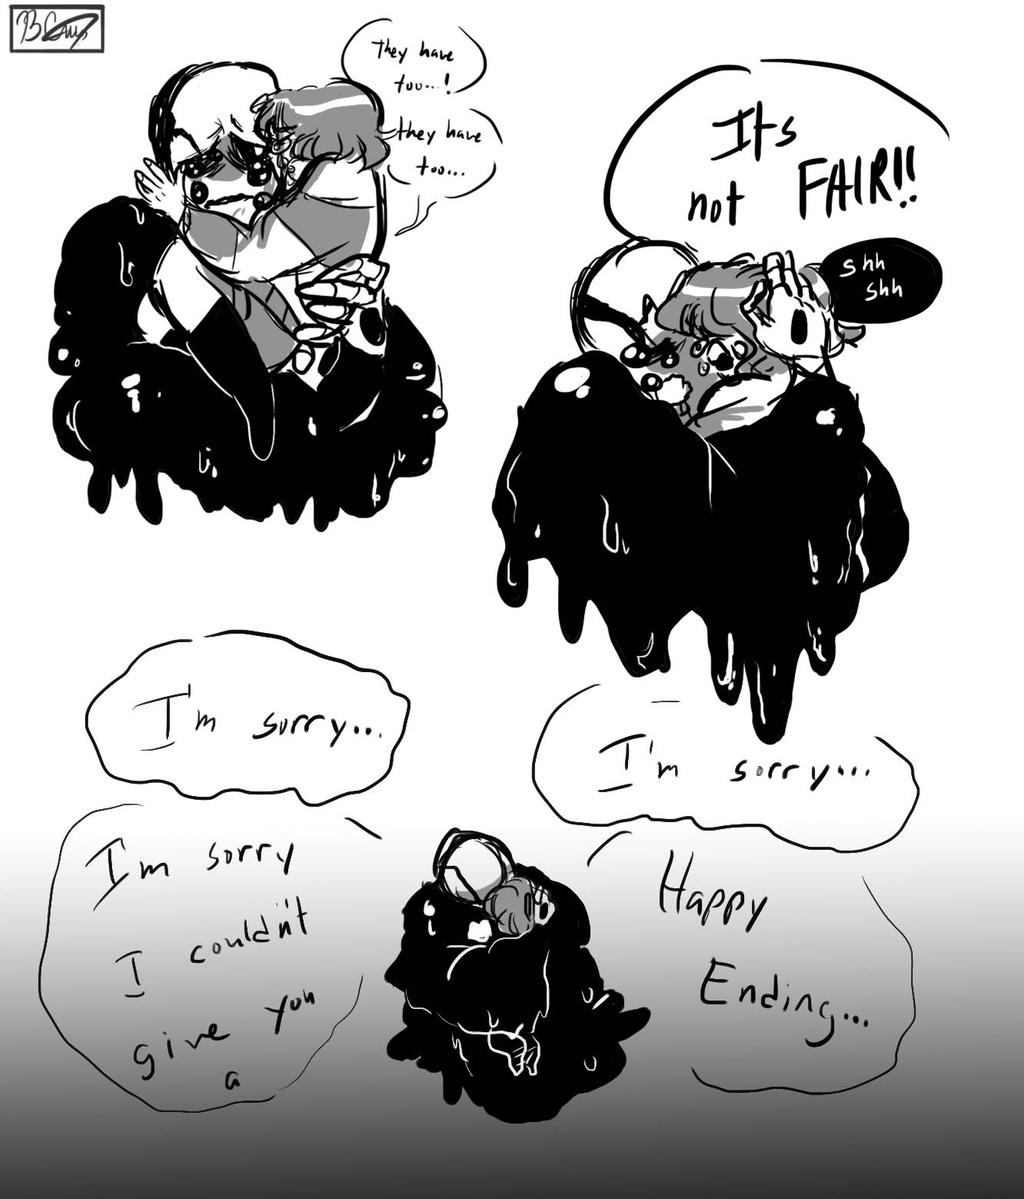 Some angsty gaster and frisk doodle by Muramasa-nii on